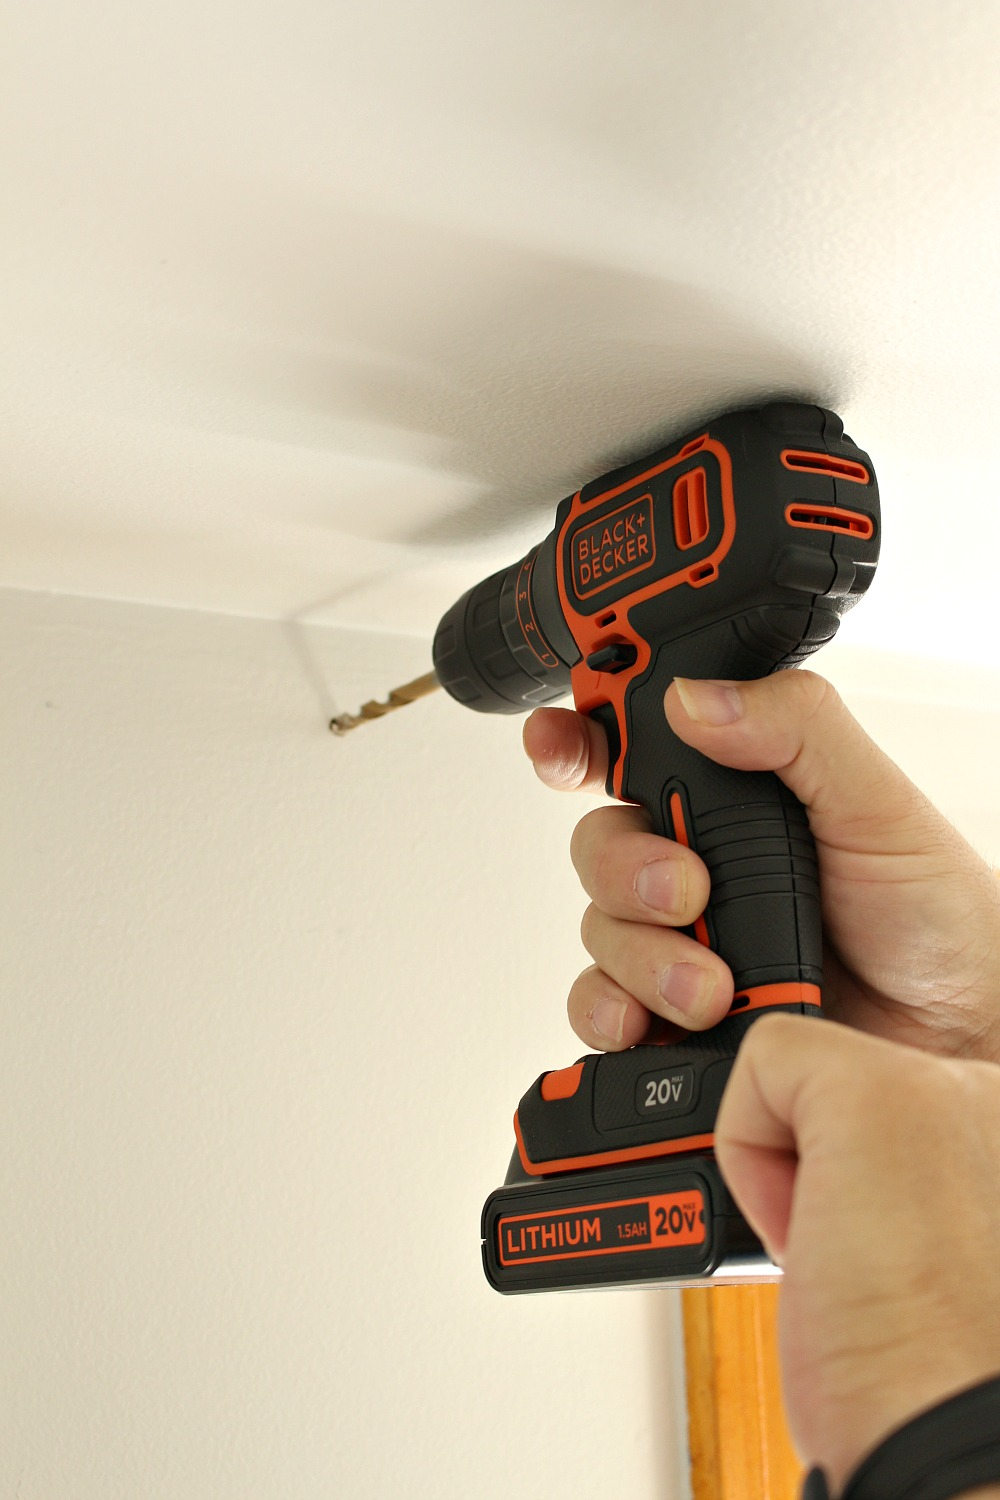 Black + Decker 20V Cordless Drill Review + Giveaway